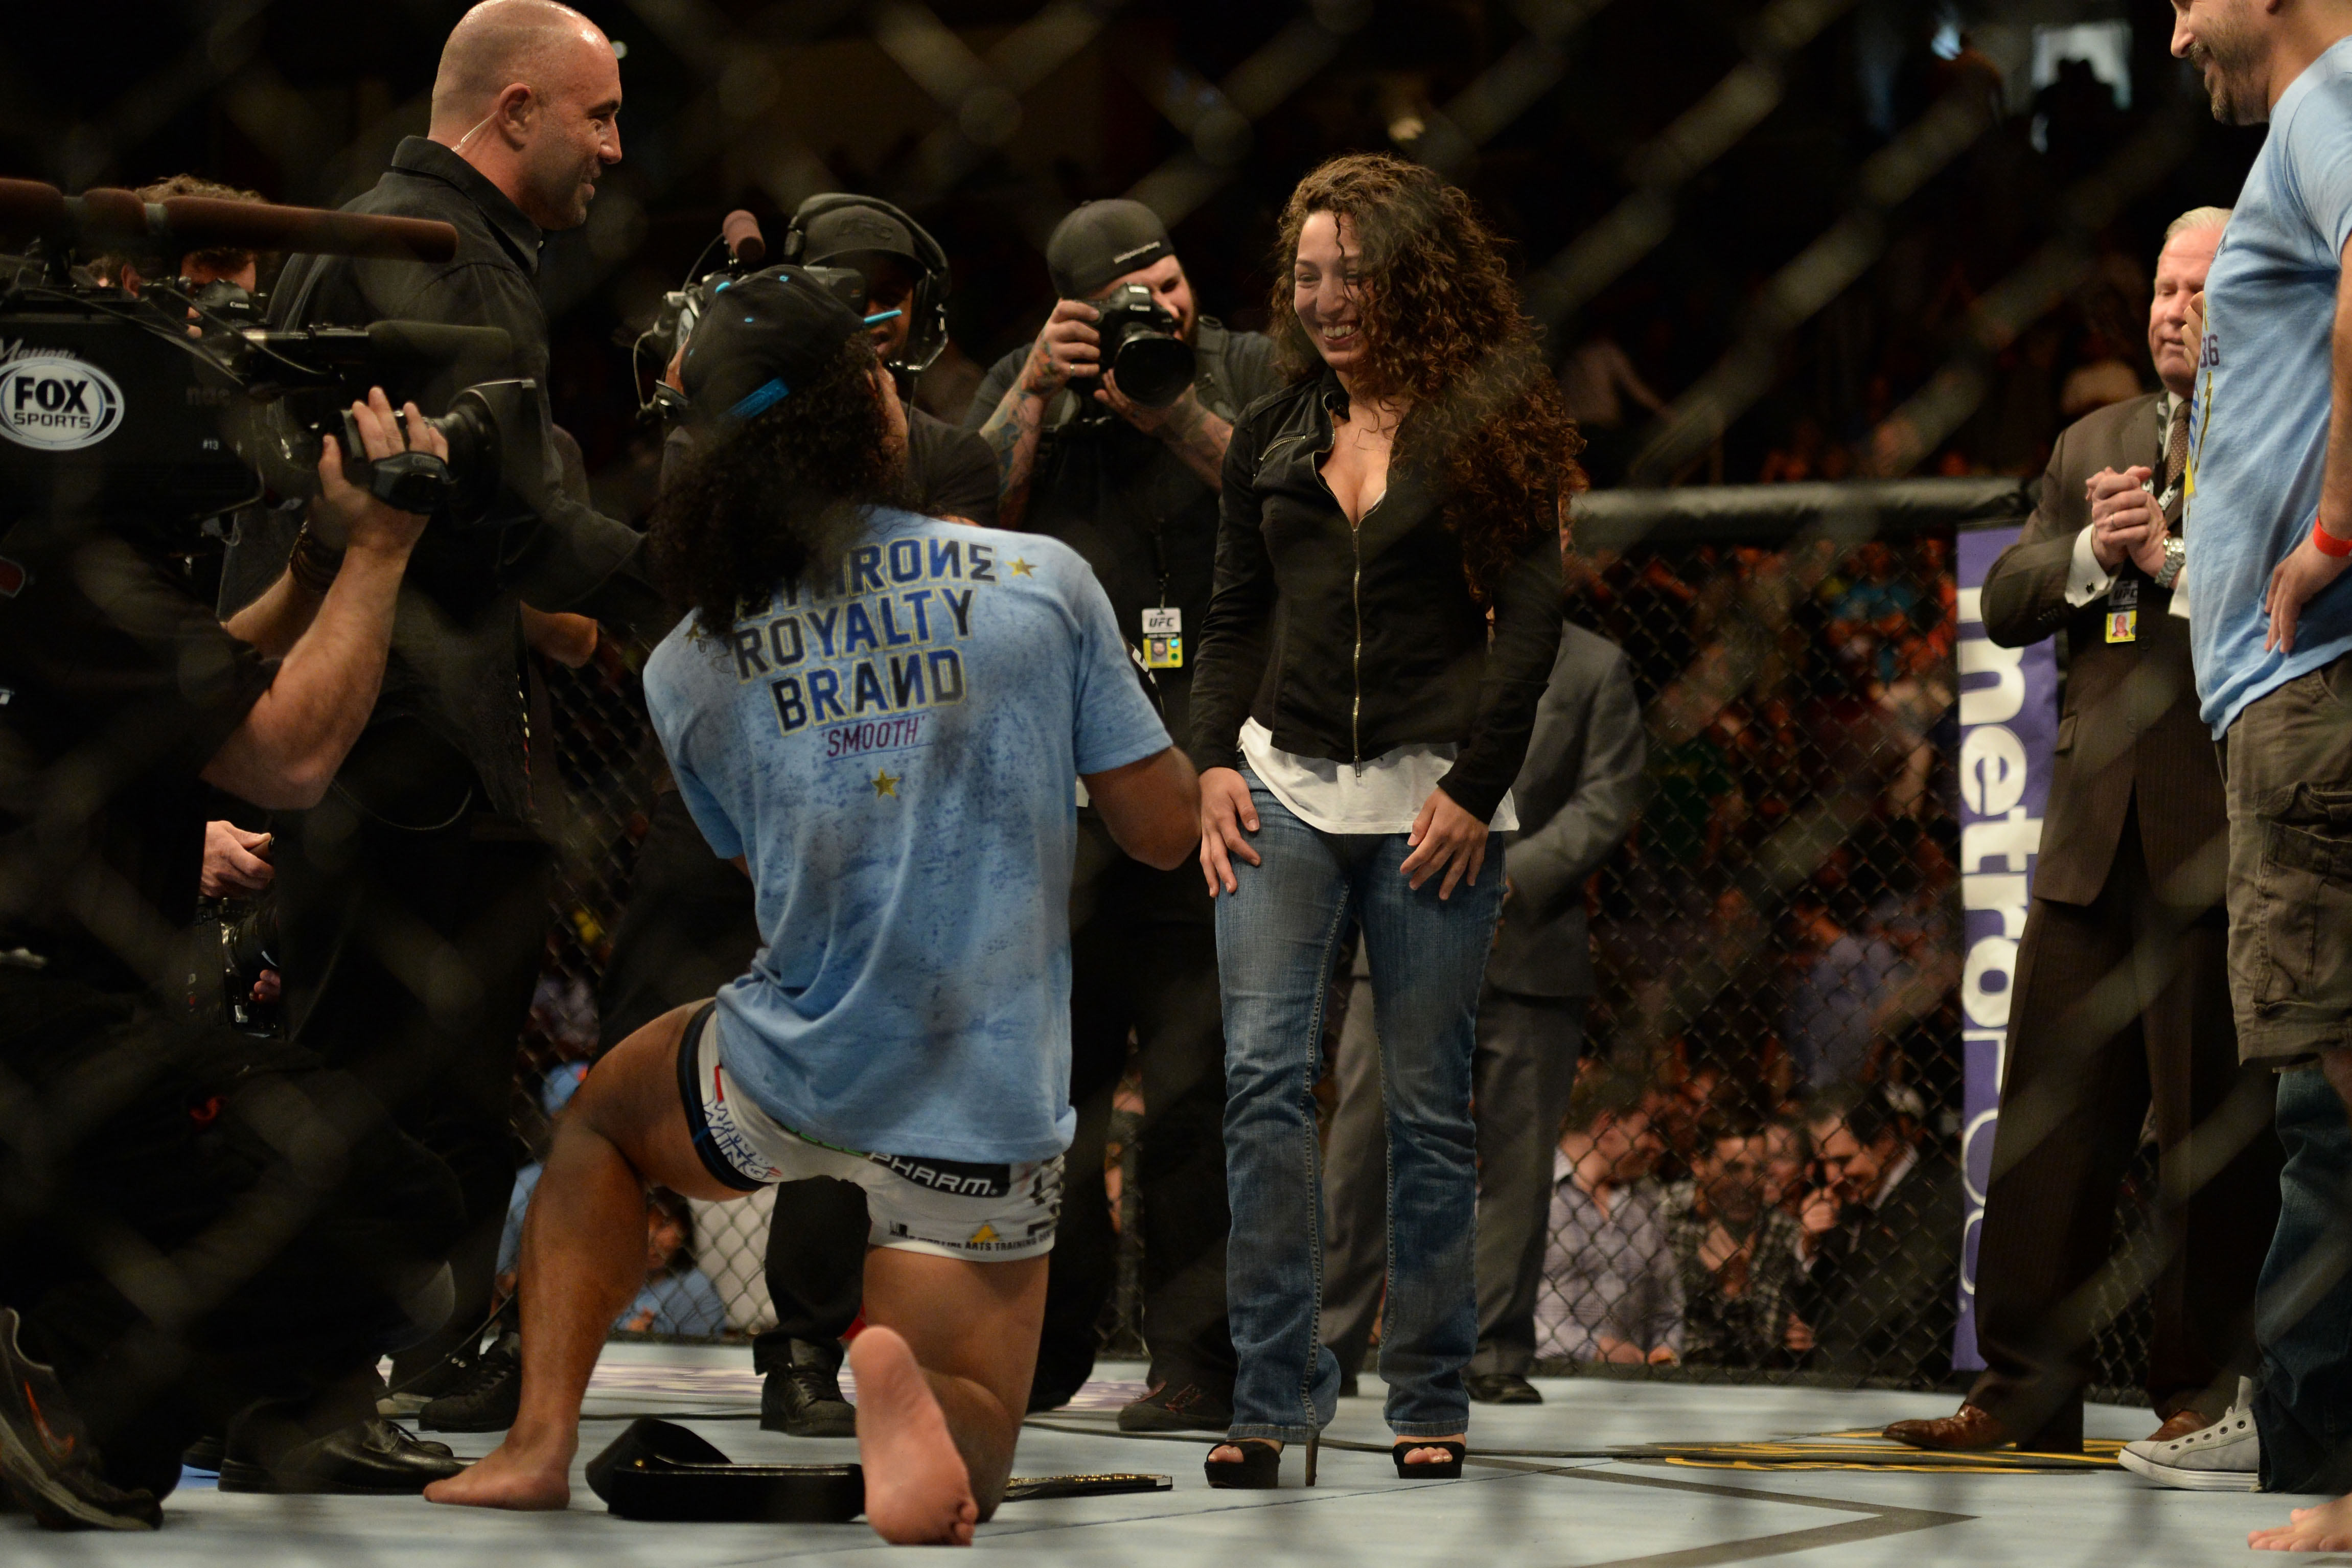 Benson Henderson proposes to Maria Magana after his victory against Gilbert Melendez. (USA Today)